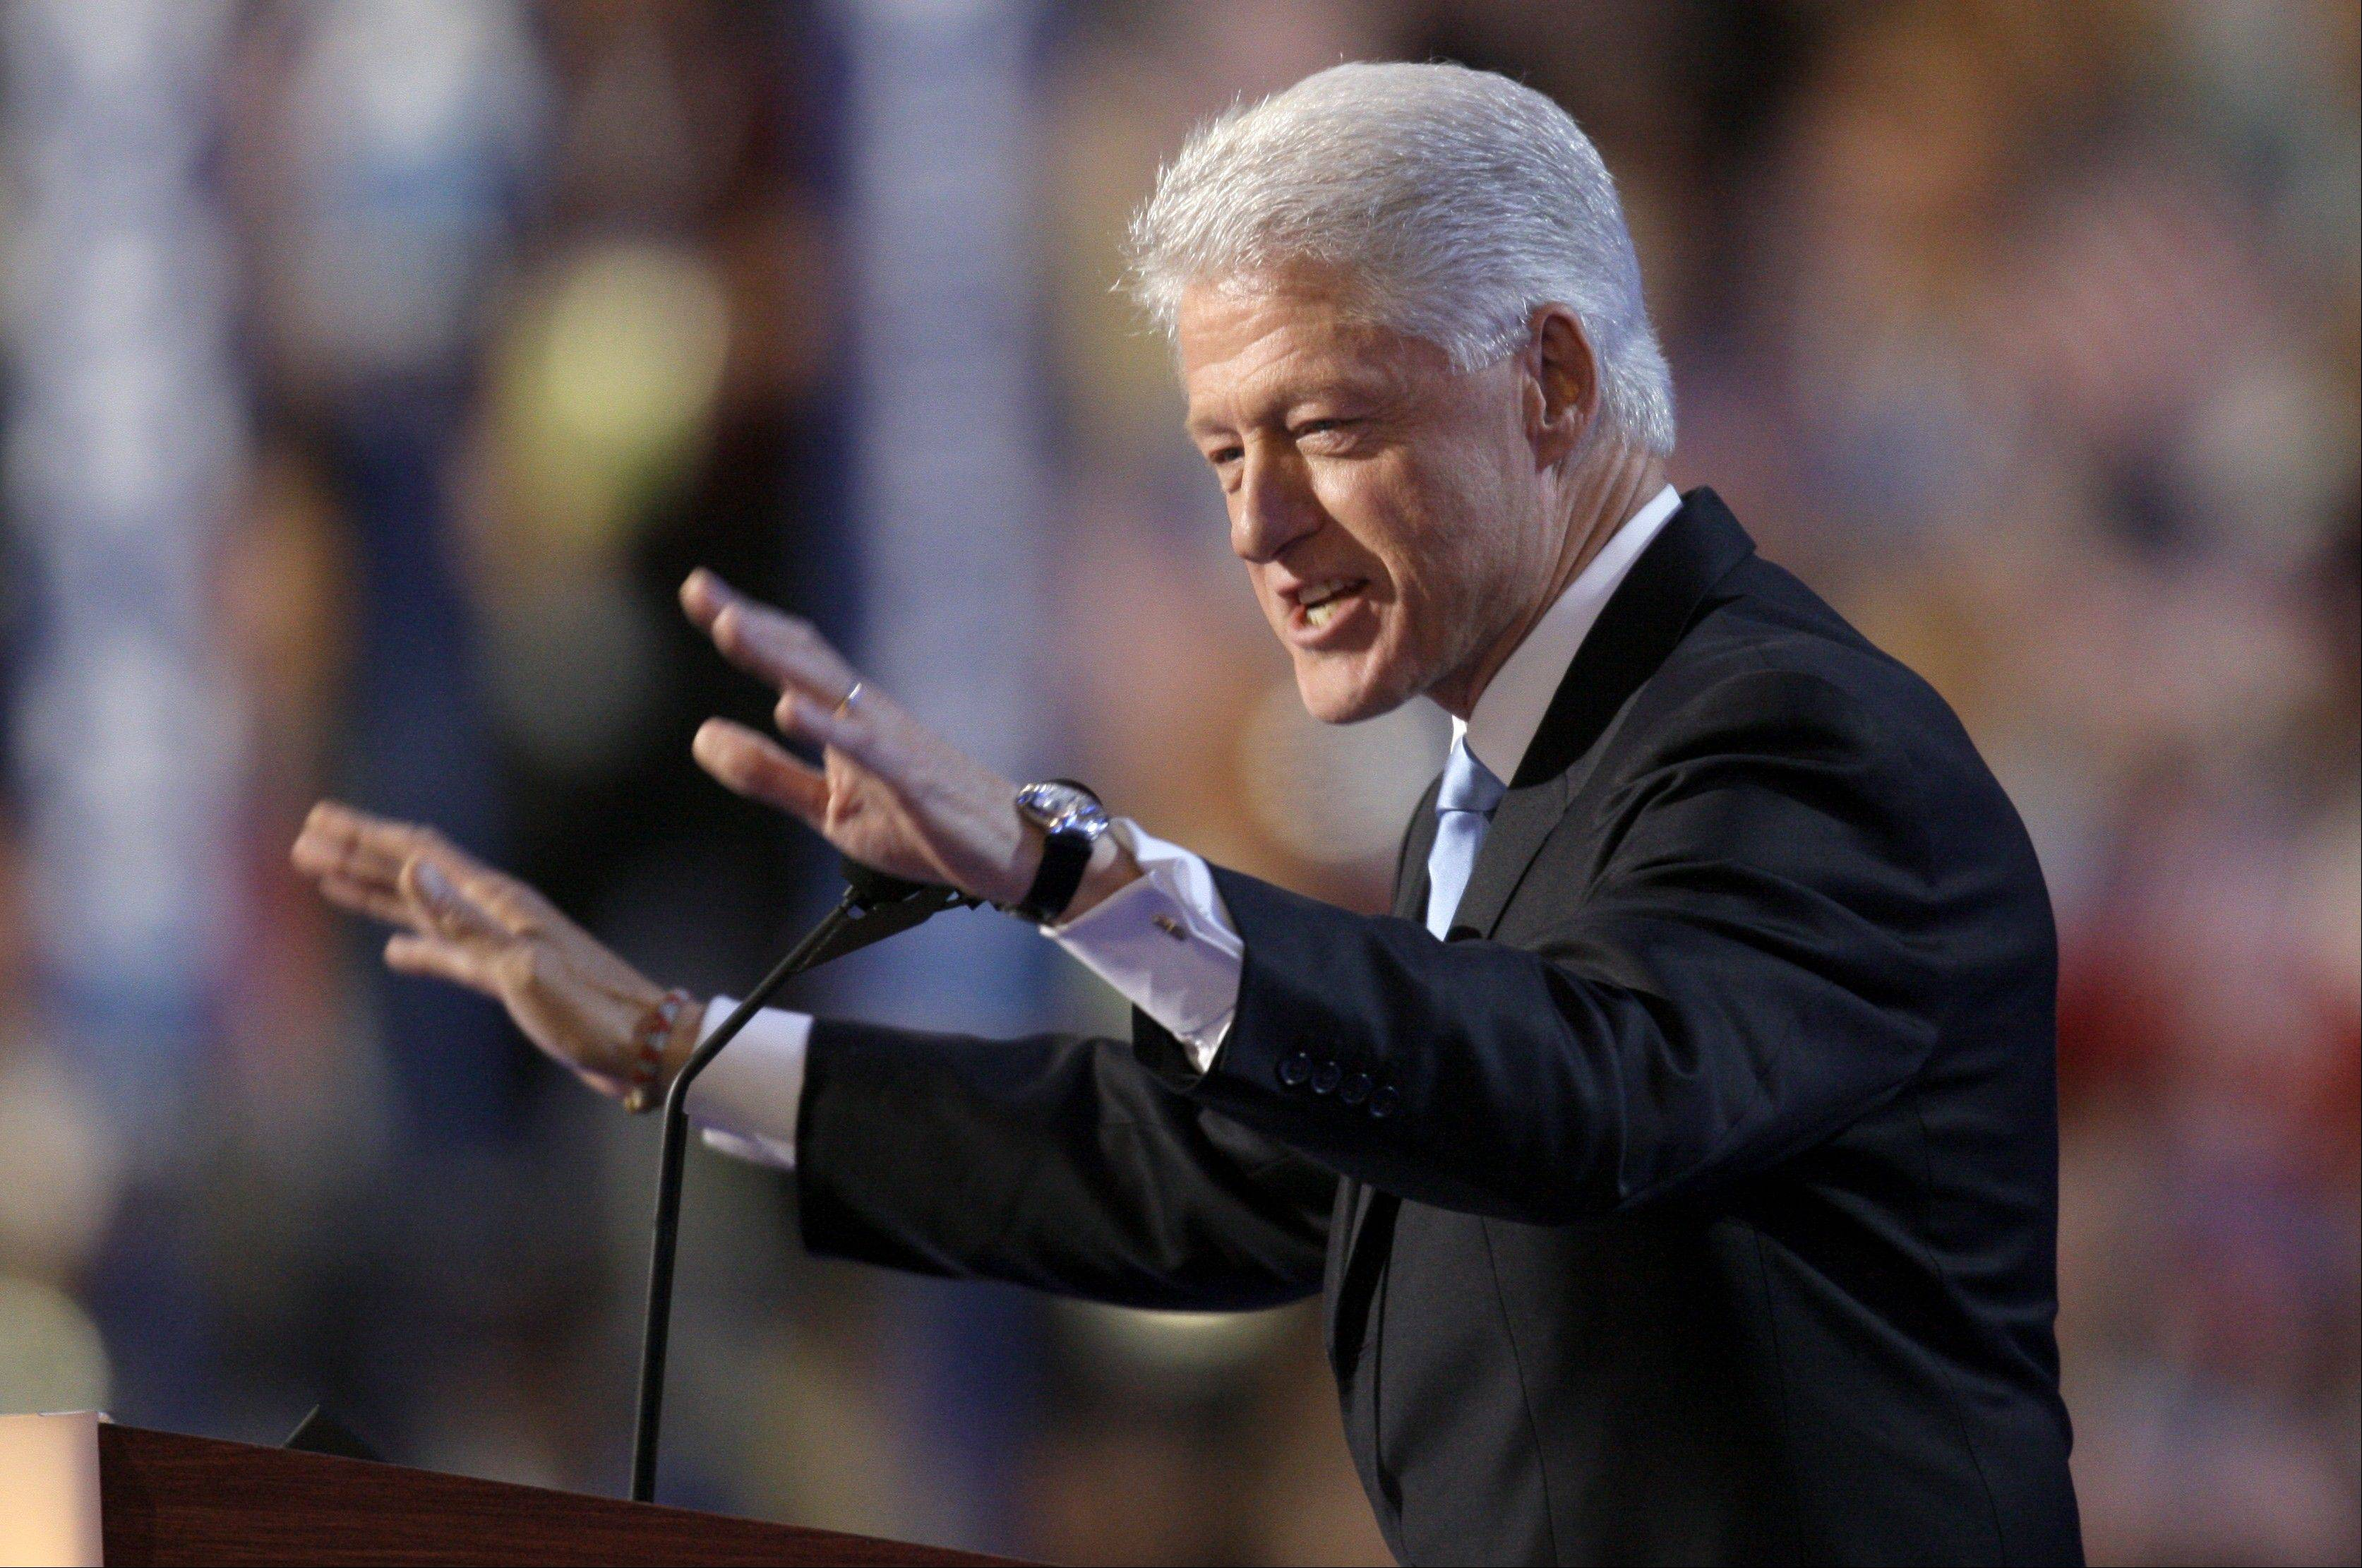 Former President Bill Clinton speaks at the Democratic National Convention in Denver in 2008.